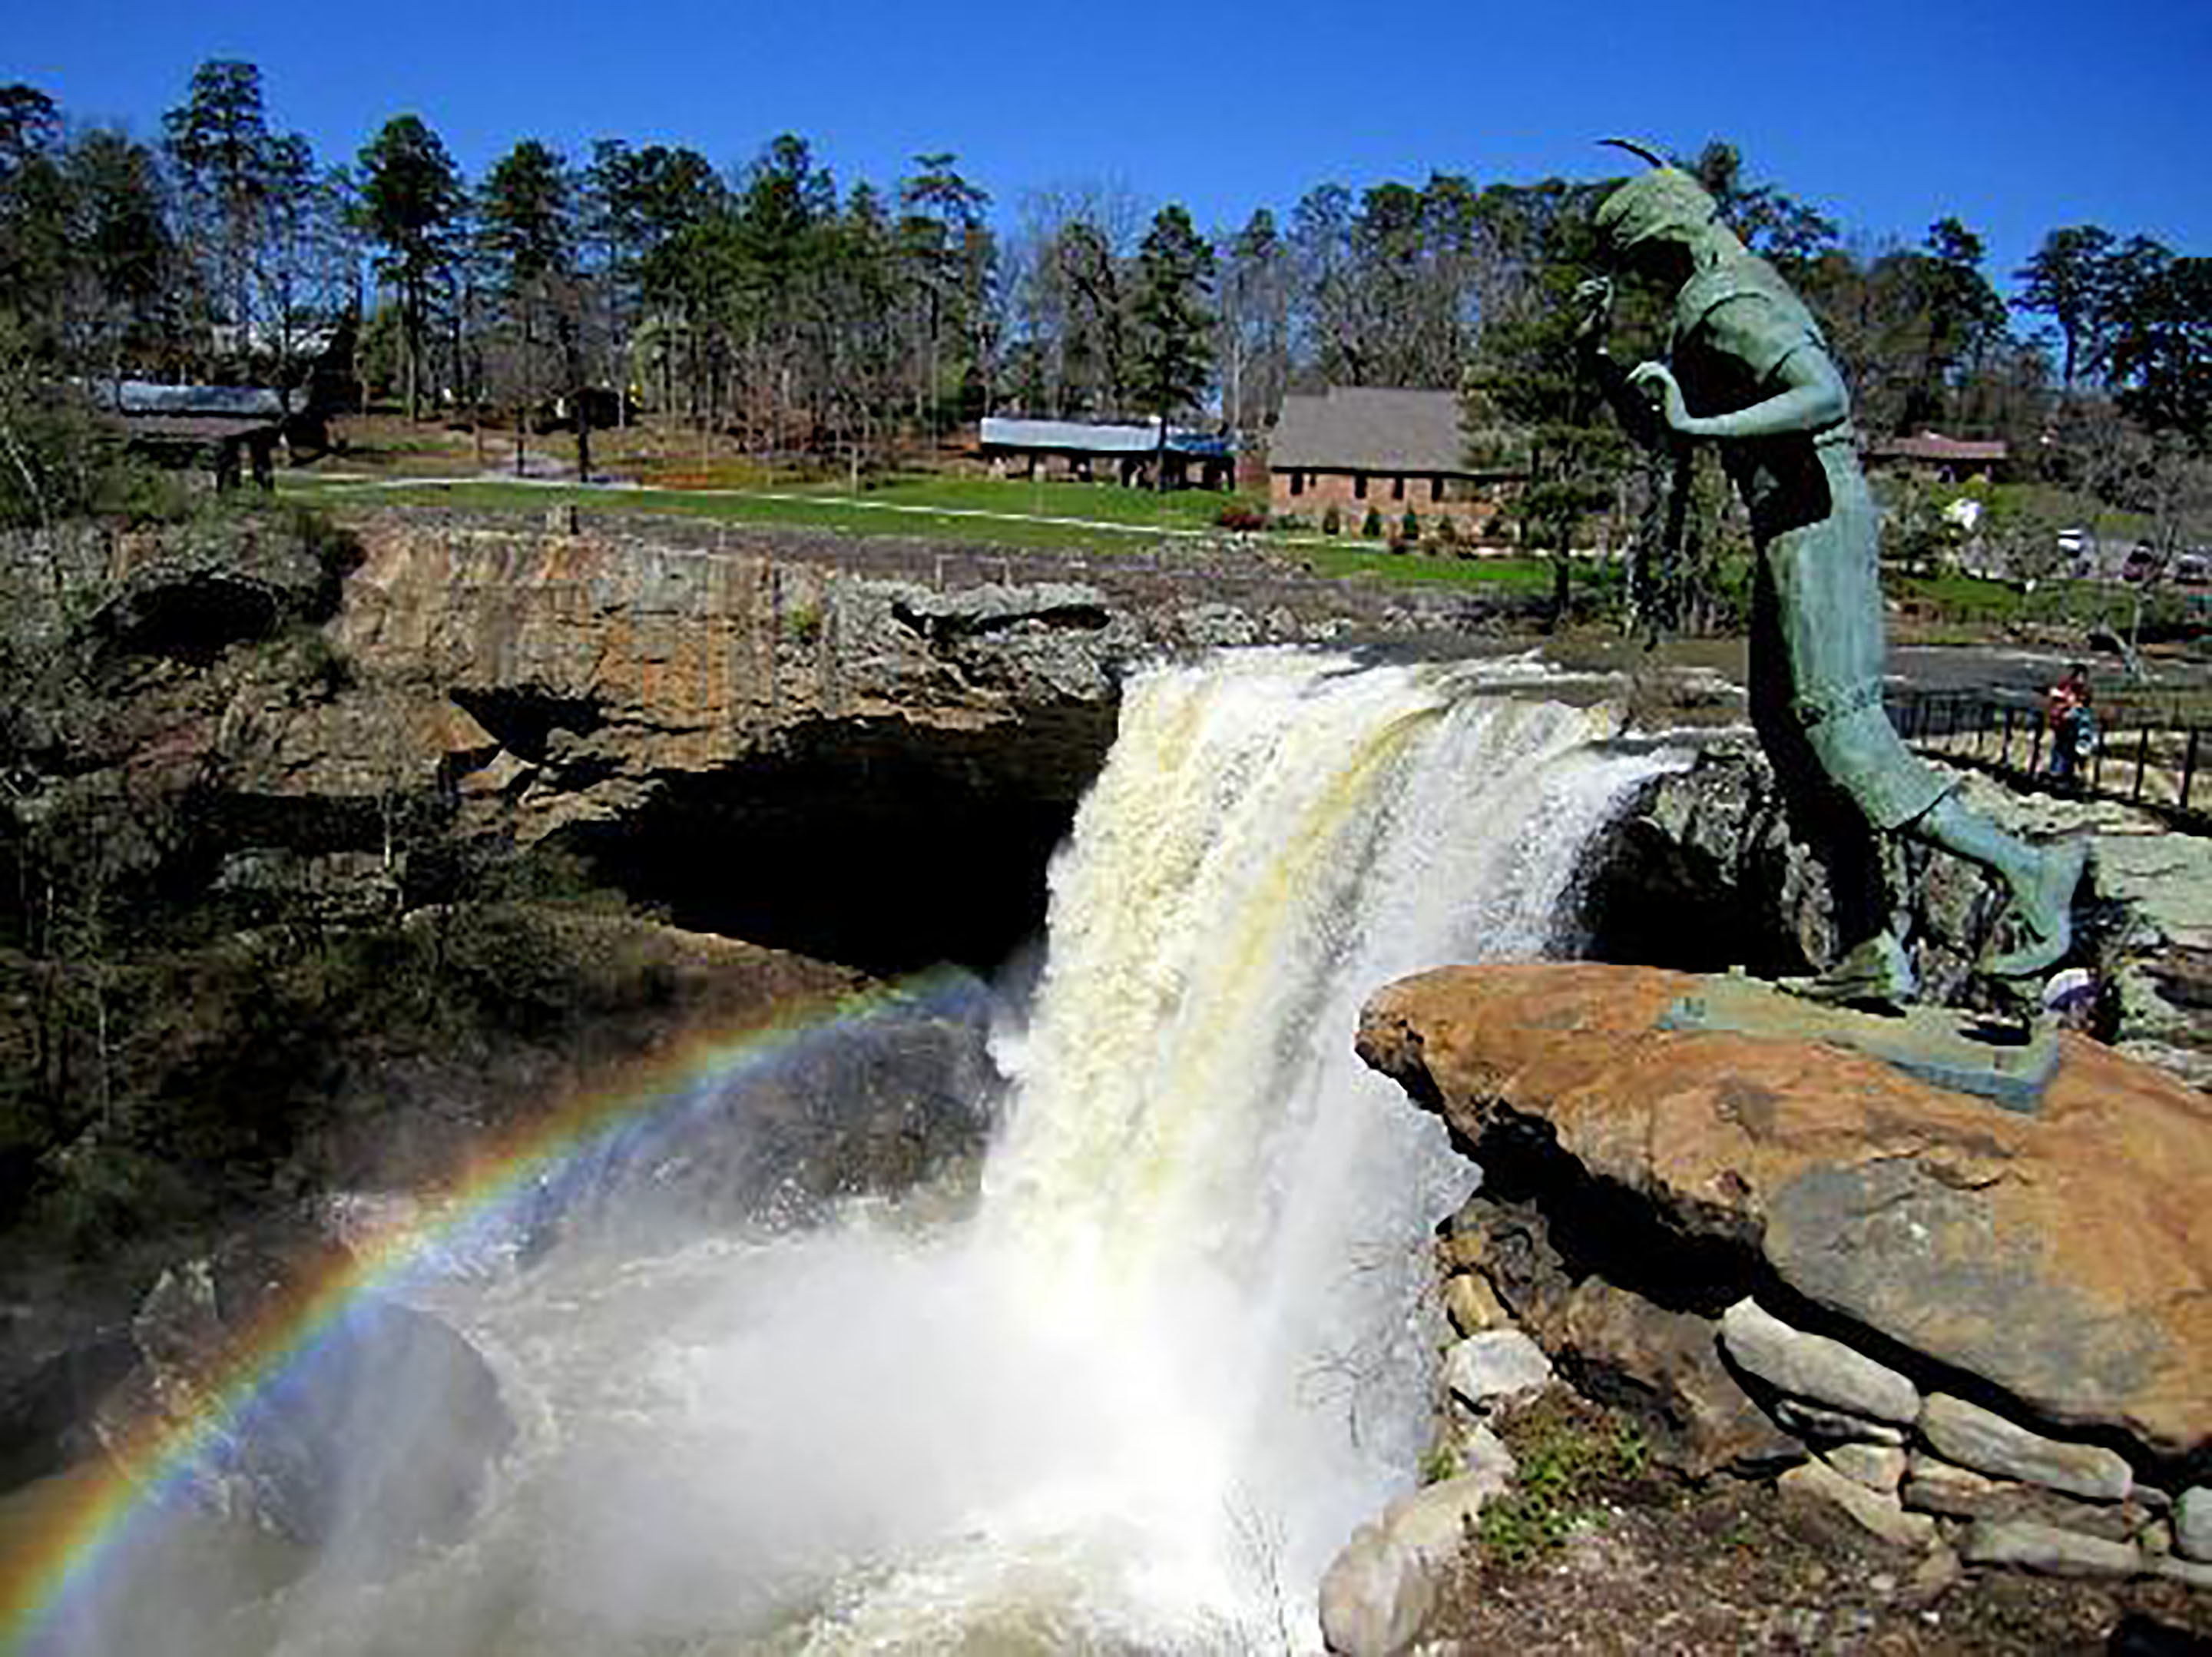 https://alabama-travel.s3.amazonaws.com/partners-uploads/photo/image/5787e6c37a799b898200001a/noccalula_falls_2880px.jpg